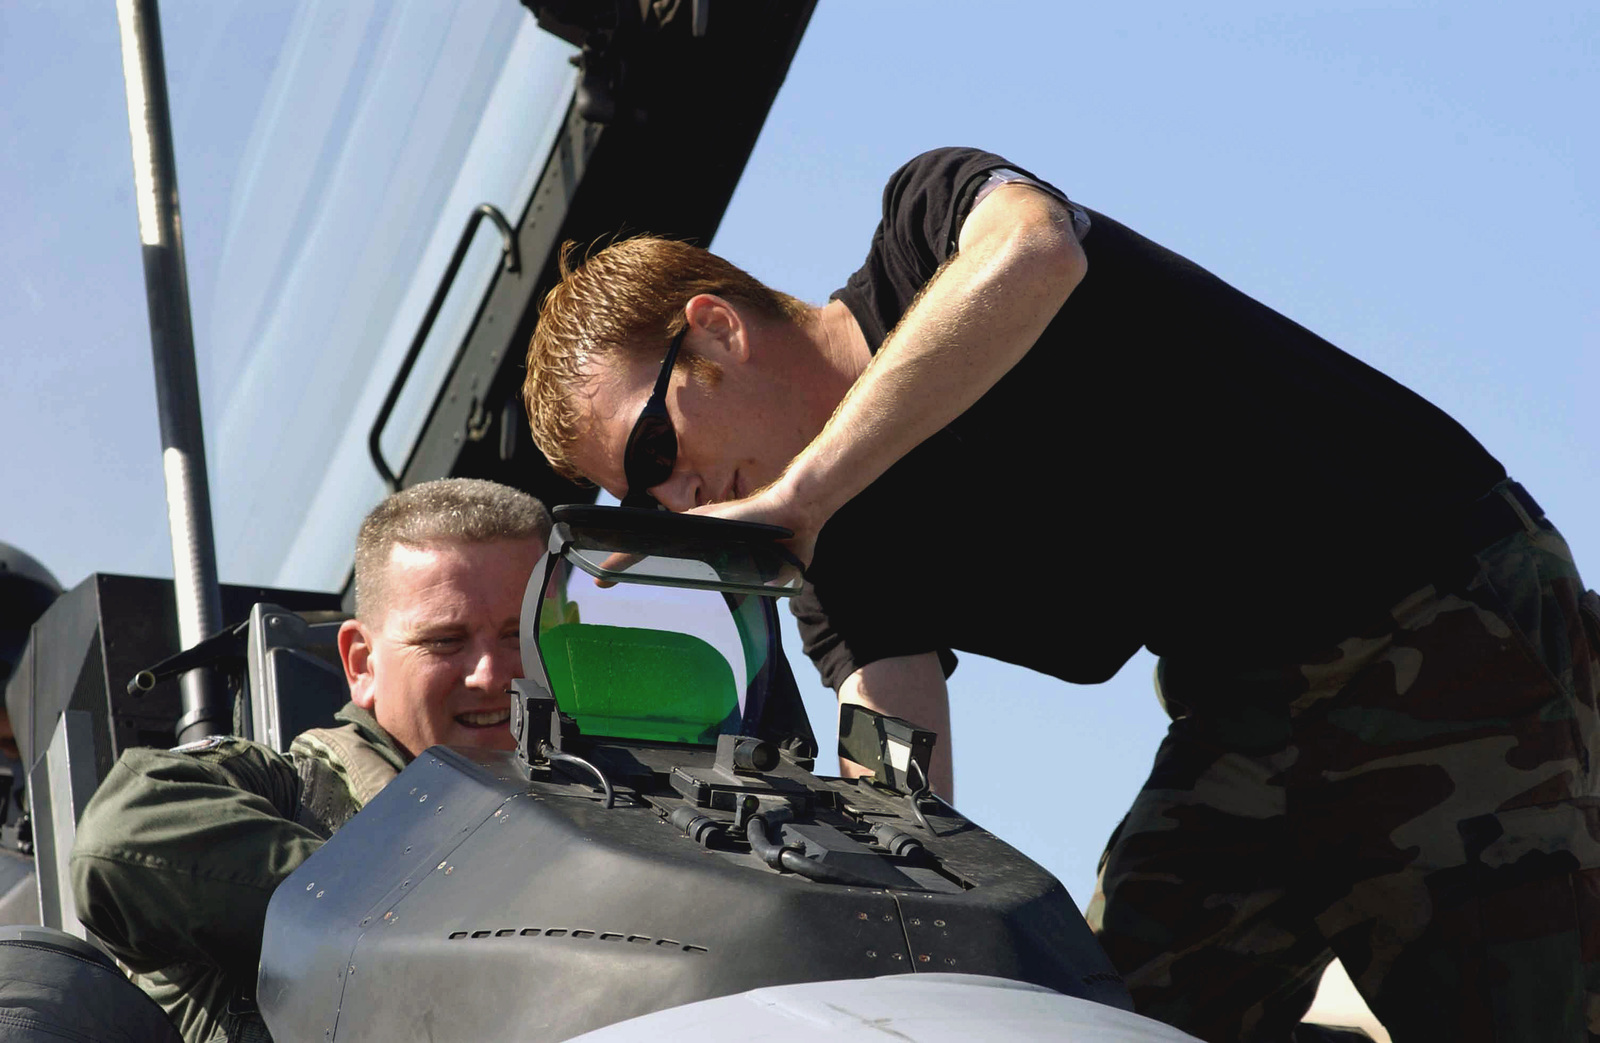 US Air Force (USAF) Lieutenant Colonel (LTC) Mark Moore (left), Commander, 555th Fighter Squadron (FS), gets help from his Crew CHIEF, USAF STAFF Sergeant (SSGT) Amos Olson, 31st Aircraft Maintenance Squadron (AMXS), 31st Fighter Wing (FW), as he straps into the cockpit of his USAF F-16 Fighting Falcon aircraft, while deployed at Decimomannu Air Base (AB), Sardinia, Italy